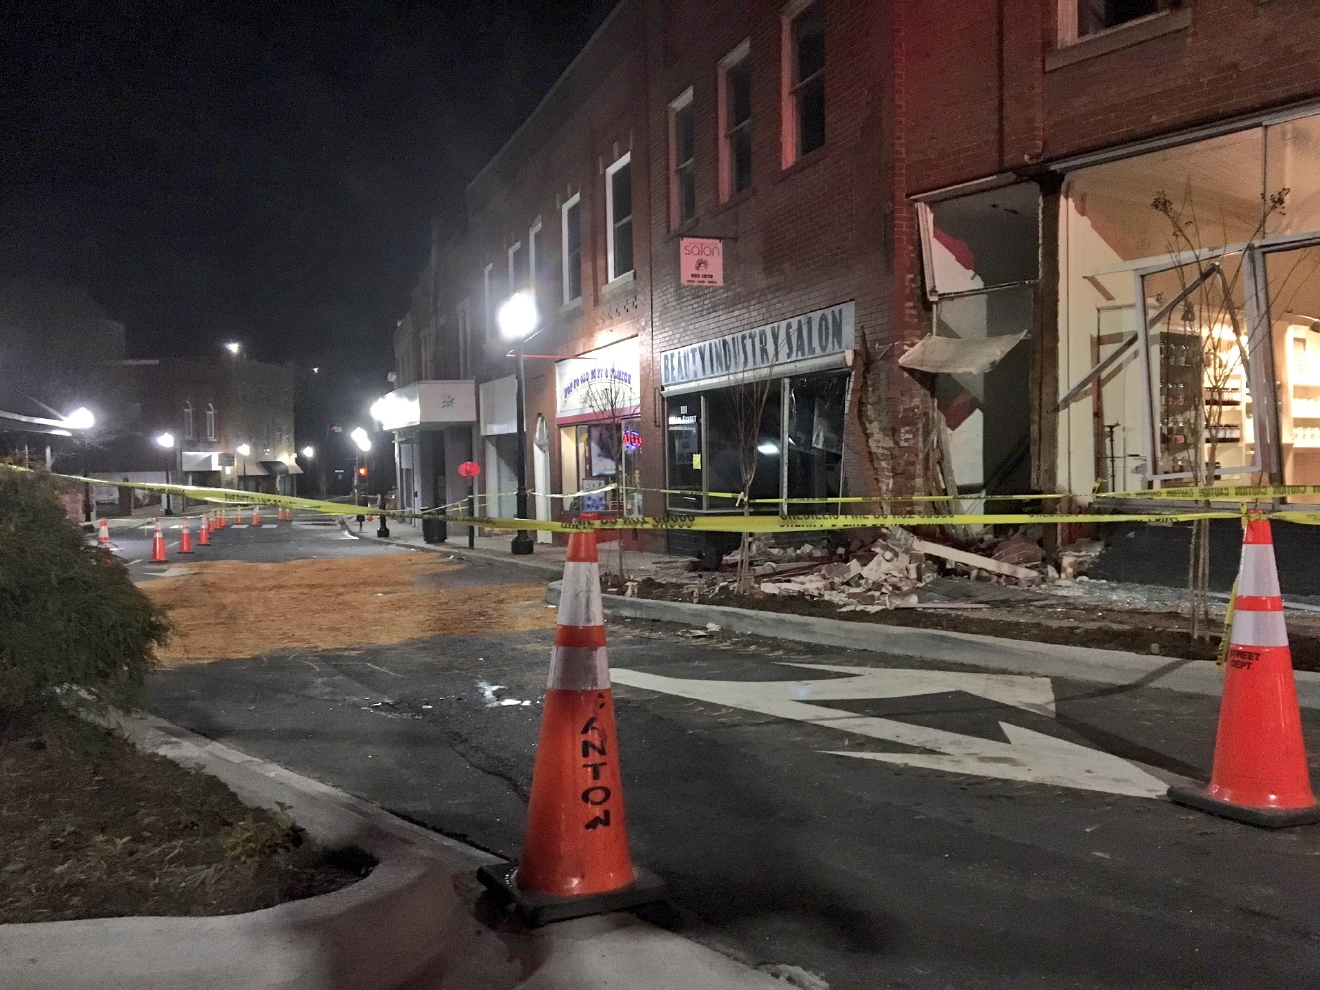 The scene on Main Street in Canton after a police chase ended in an SUV crashing into a building. (Photo credit: WLOS staff)